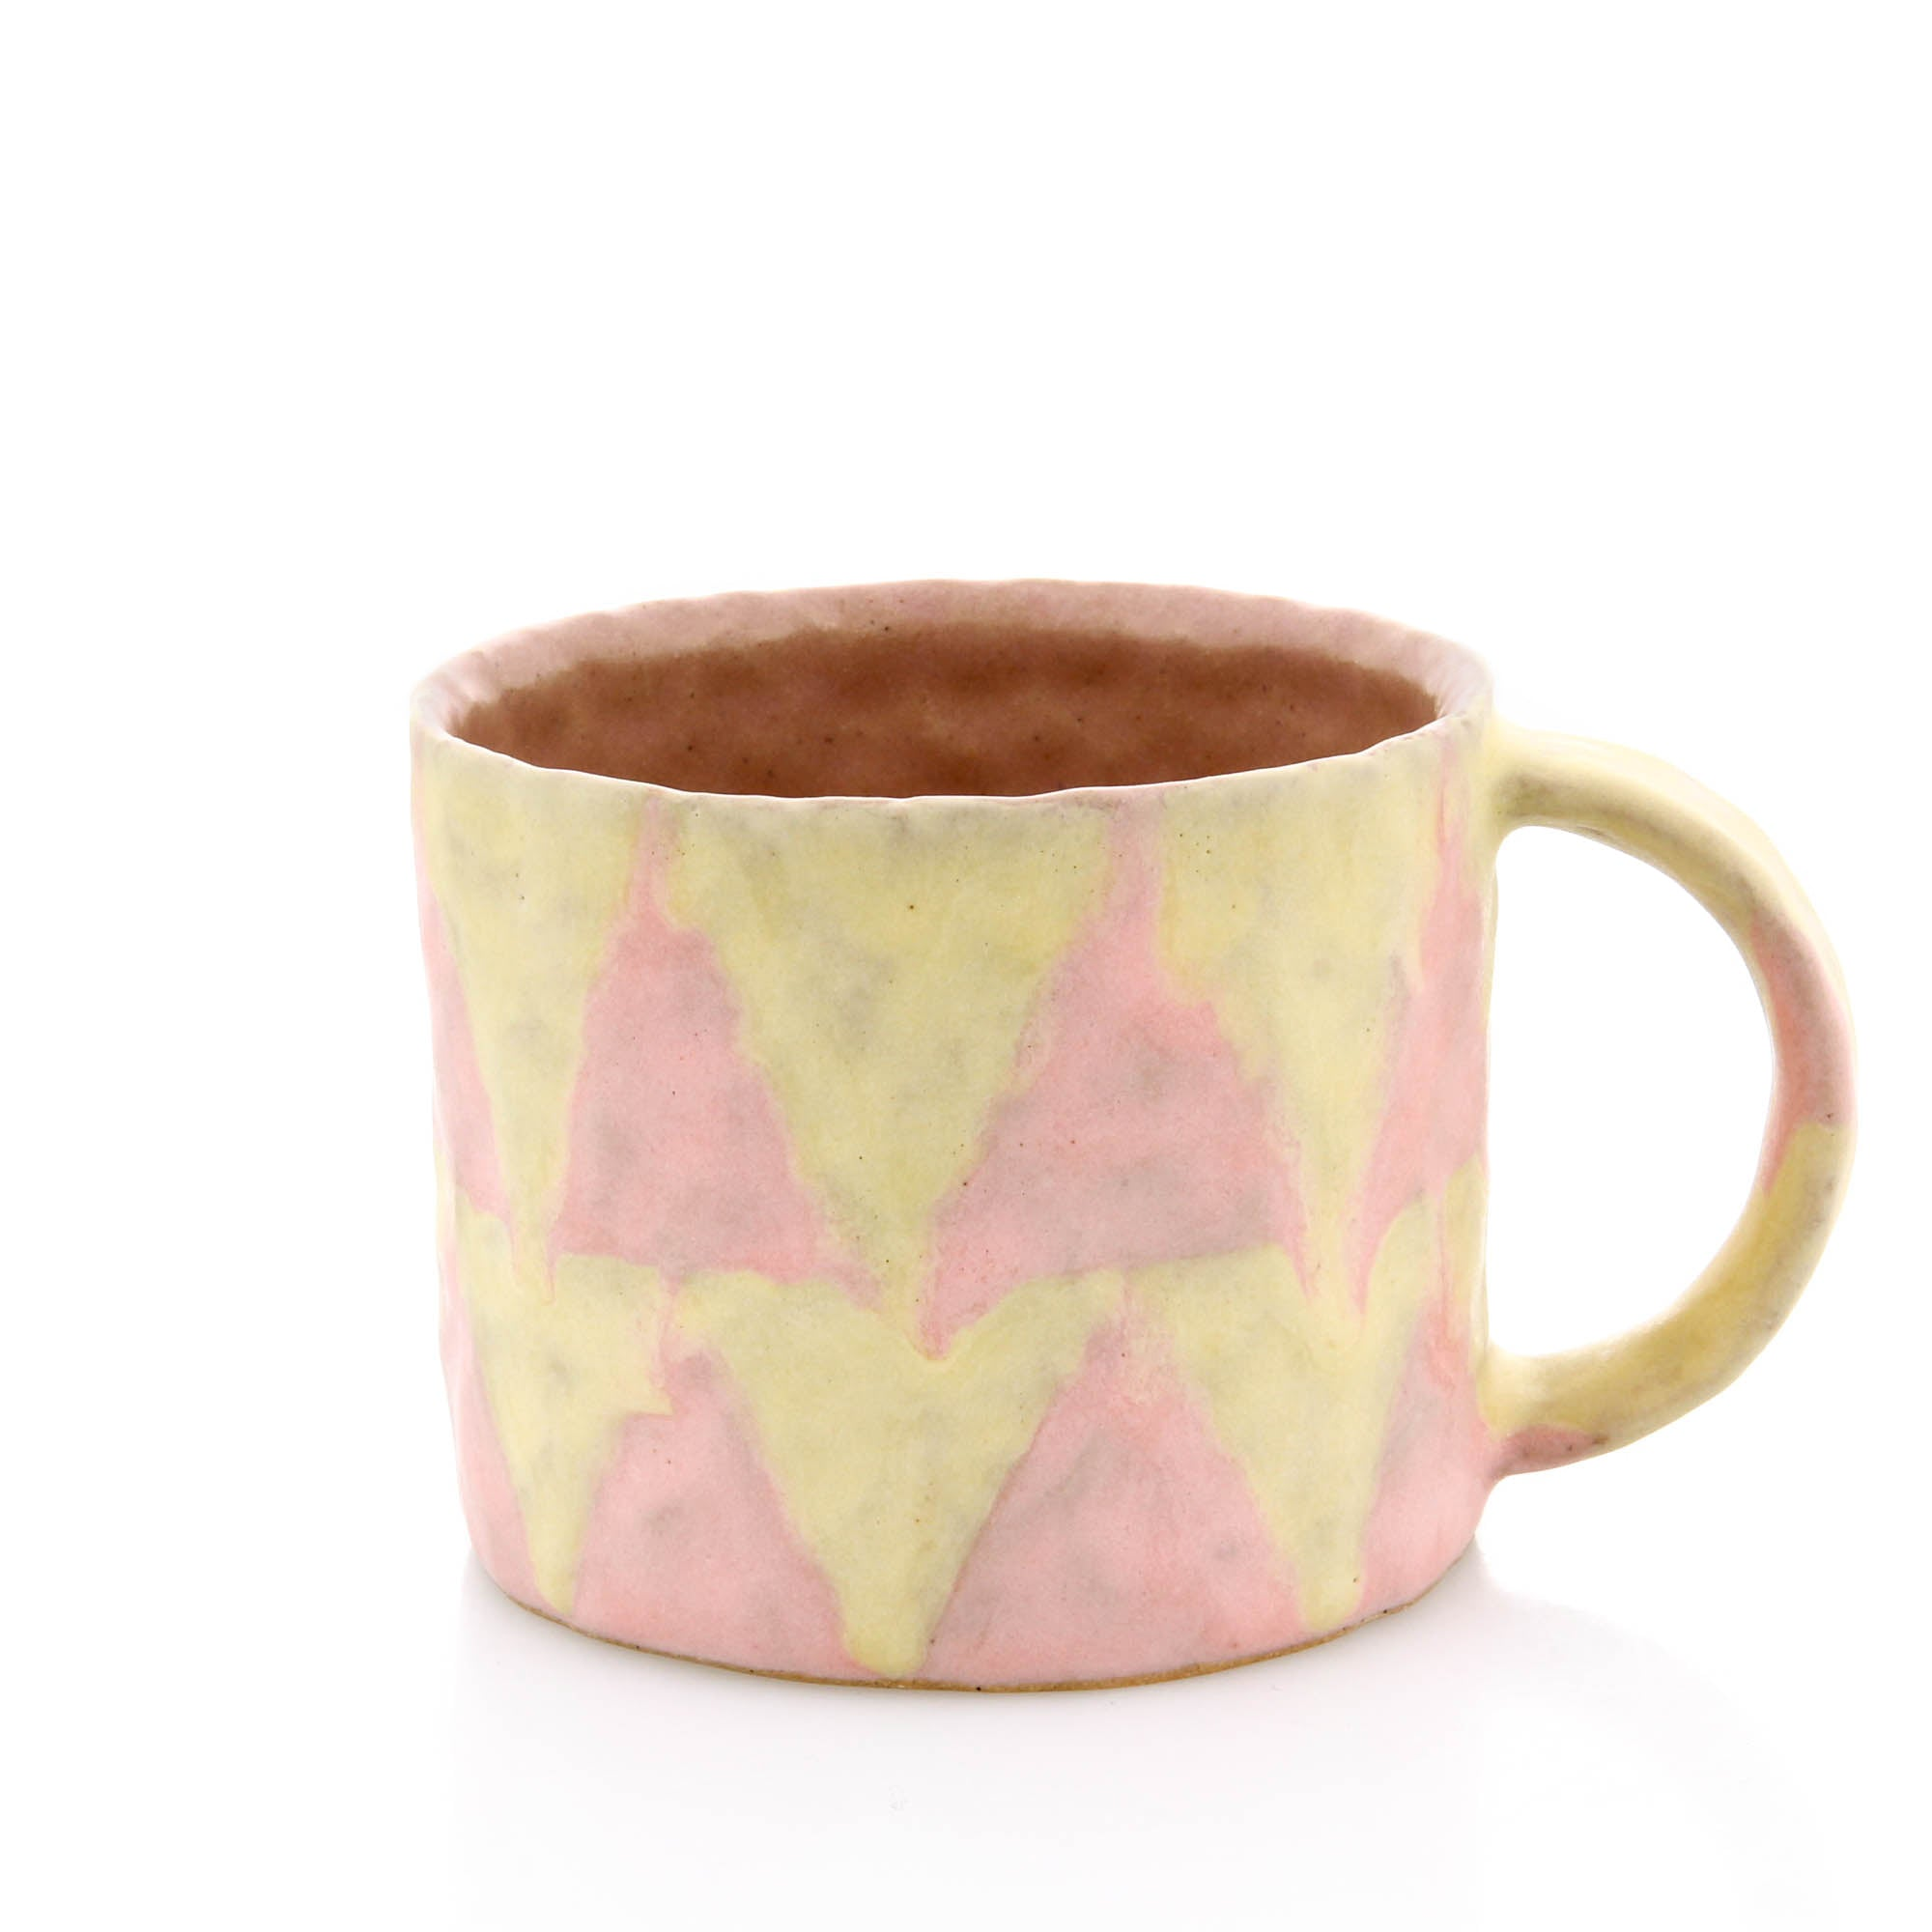 Kelsie Rudolph, Mug in Pink and Yellow